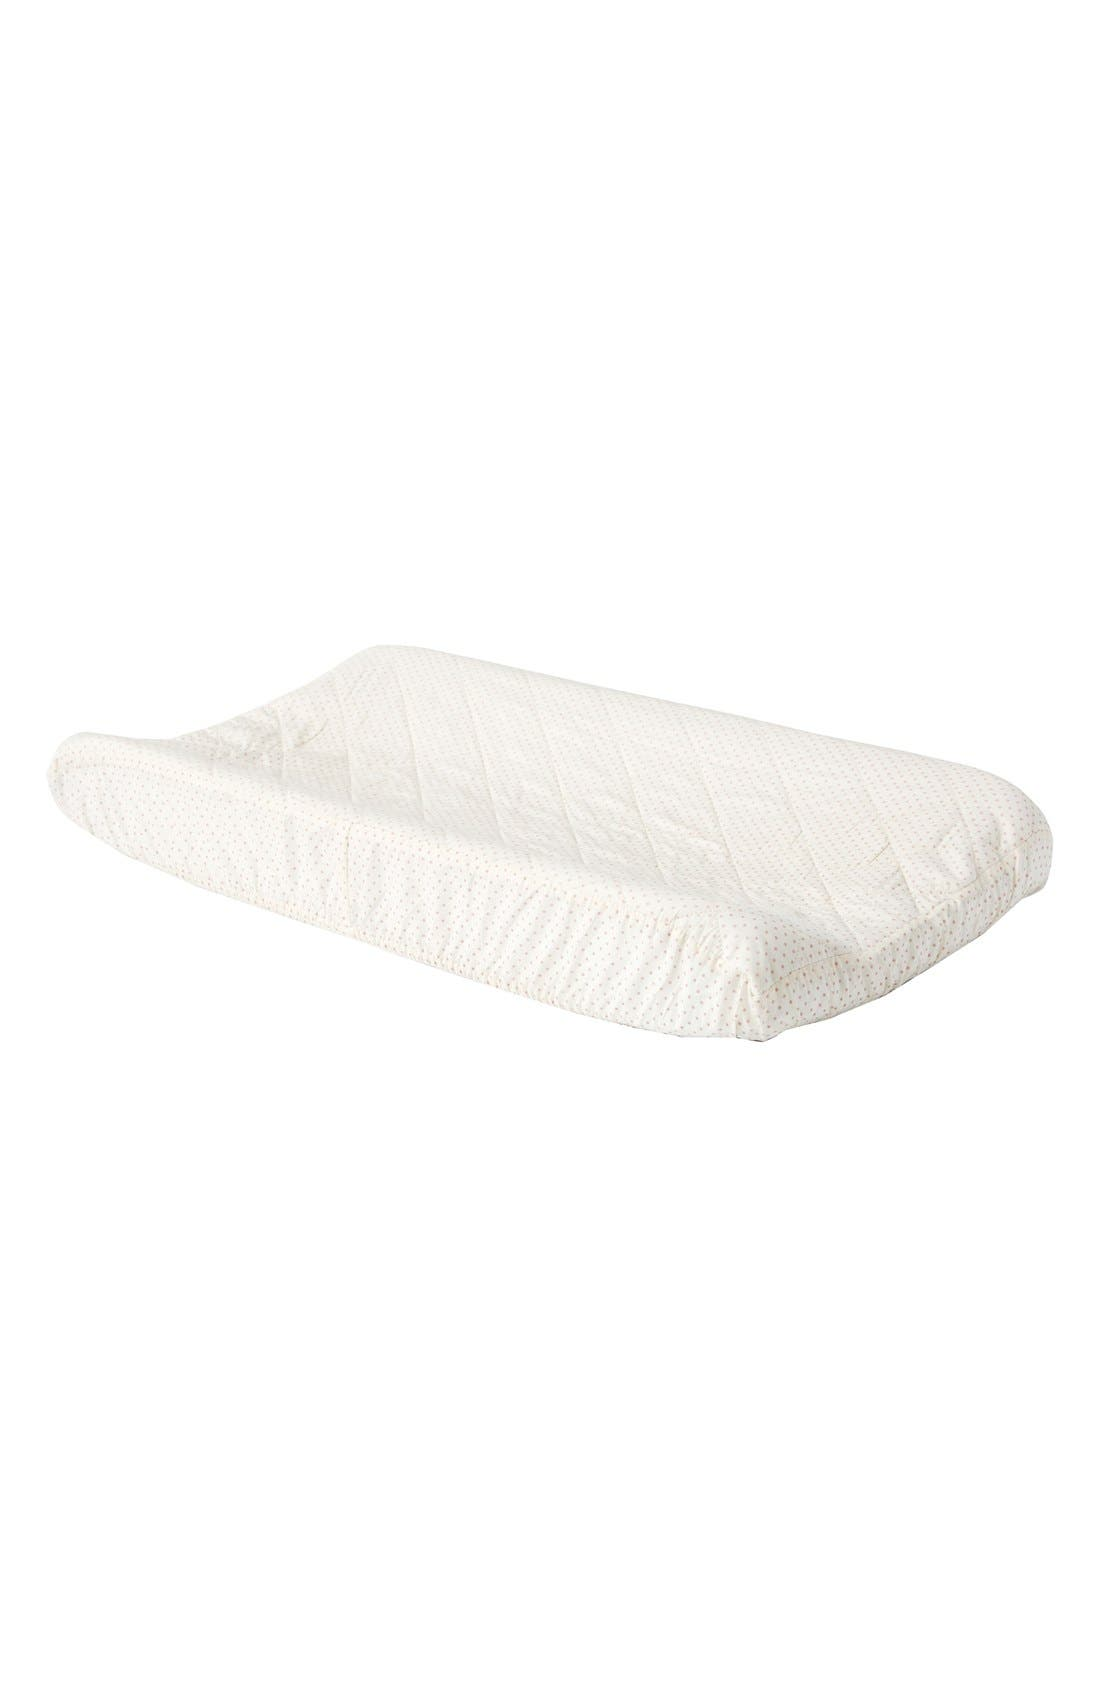 Brushed Cotton Changing Pad Cover,                             Main thumbnail 1, color,                             650